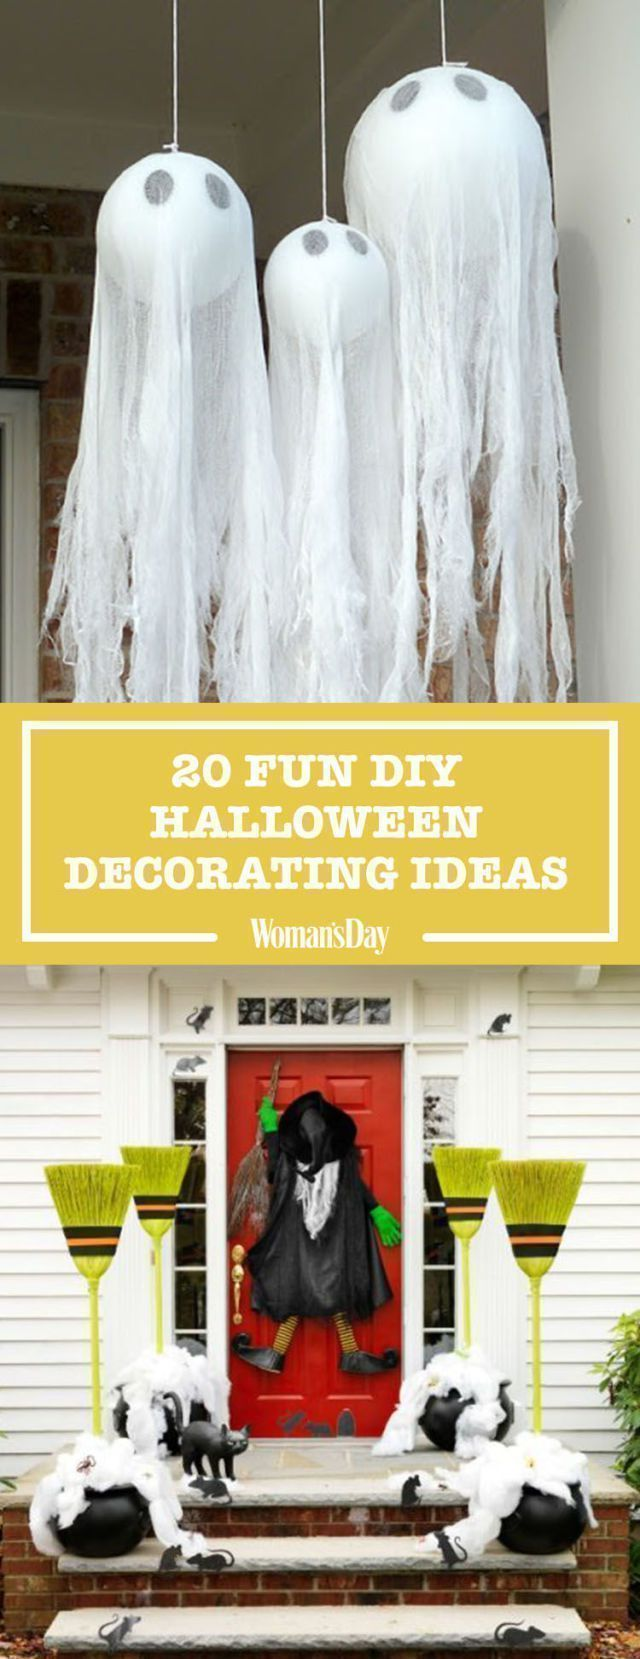 40 Easy DIY Halloween Decoration Ideas Homemade Halloween